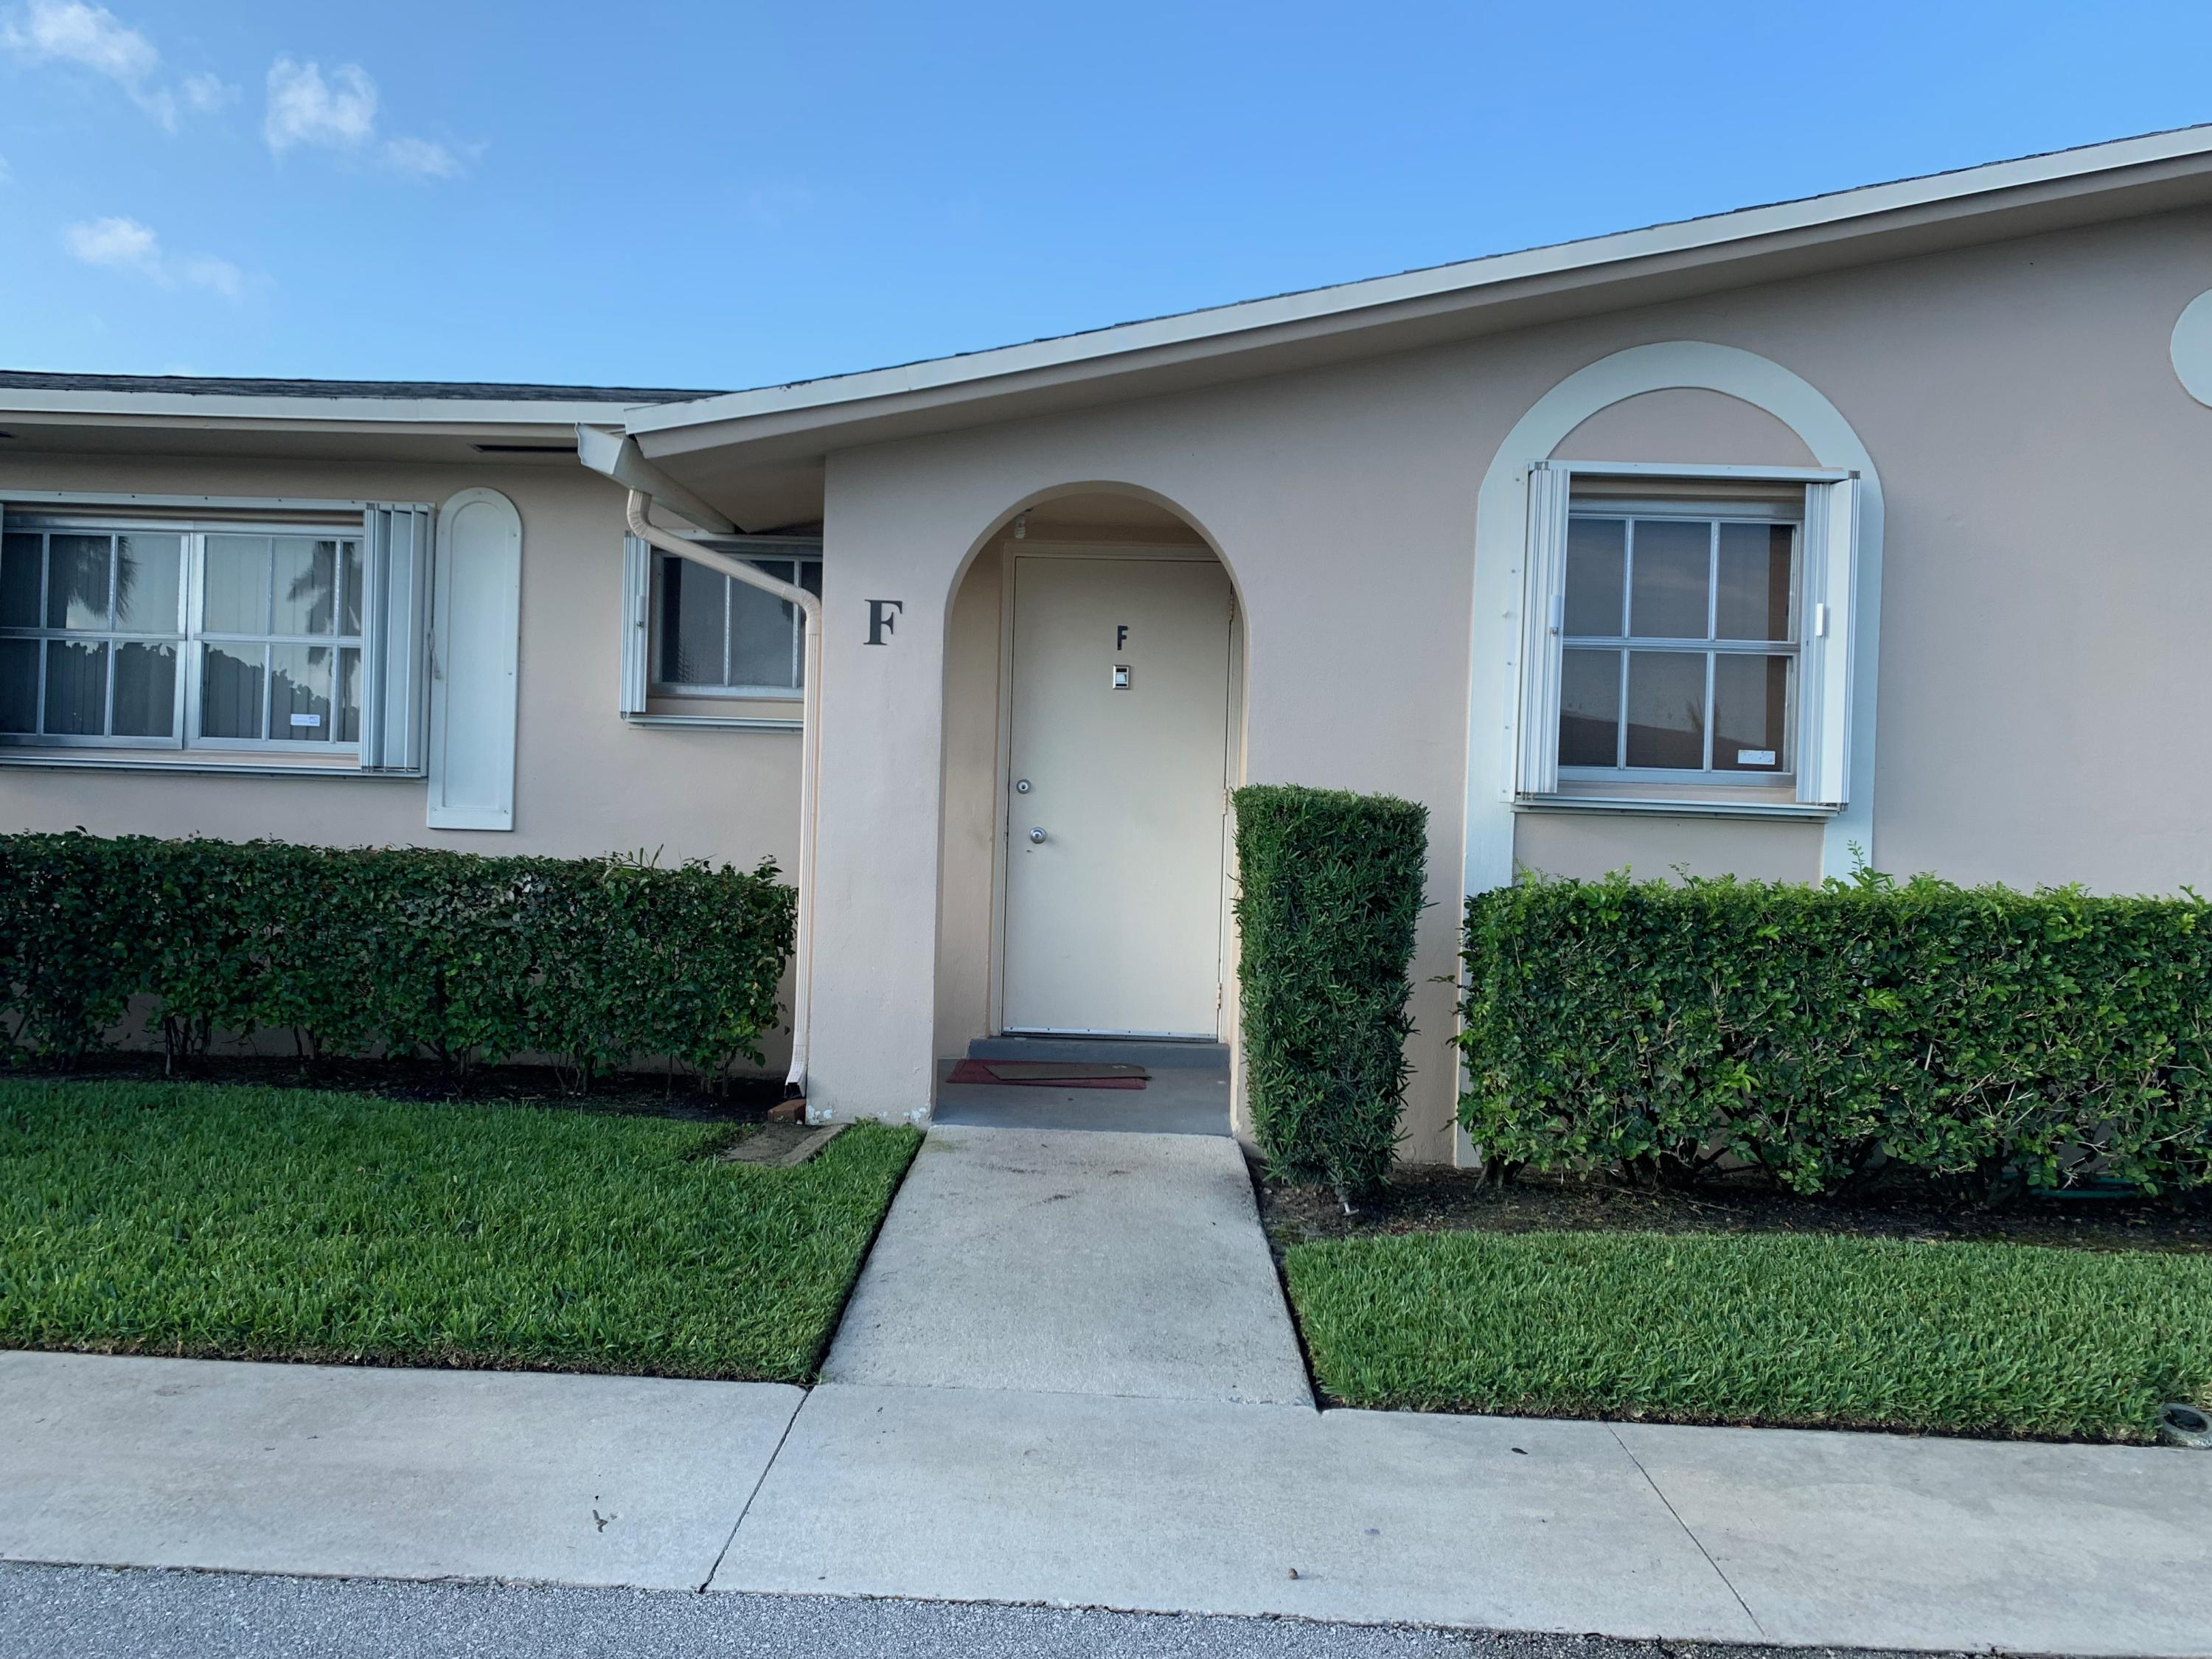 2784 Dudley Drive, West Palm Beach, Florida 33415, 2 Bedrooms Bedrooms, ,2 BathroomsBathrooms,Villa,For Rent,Dudley,RX-10529526